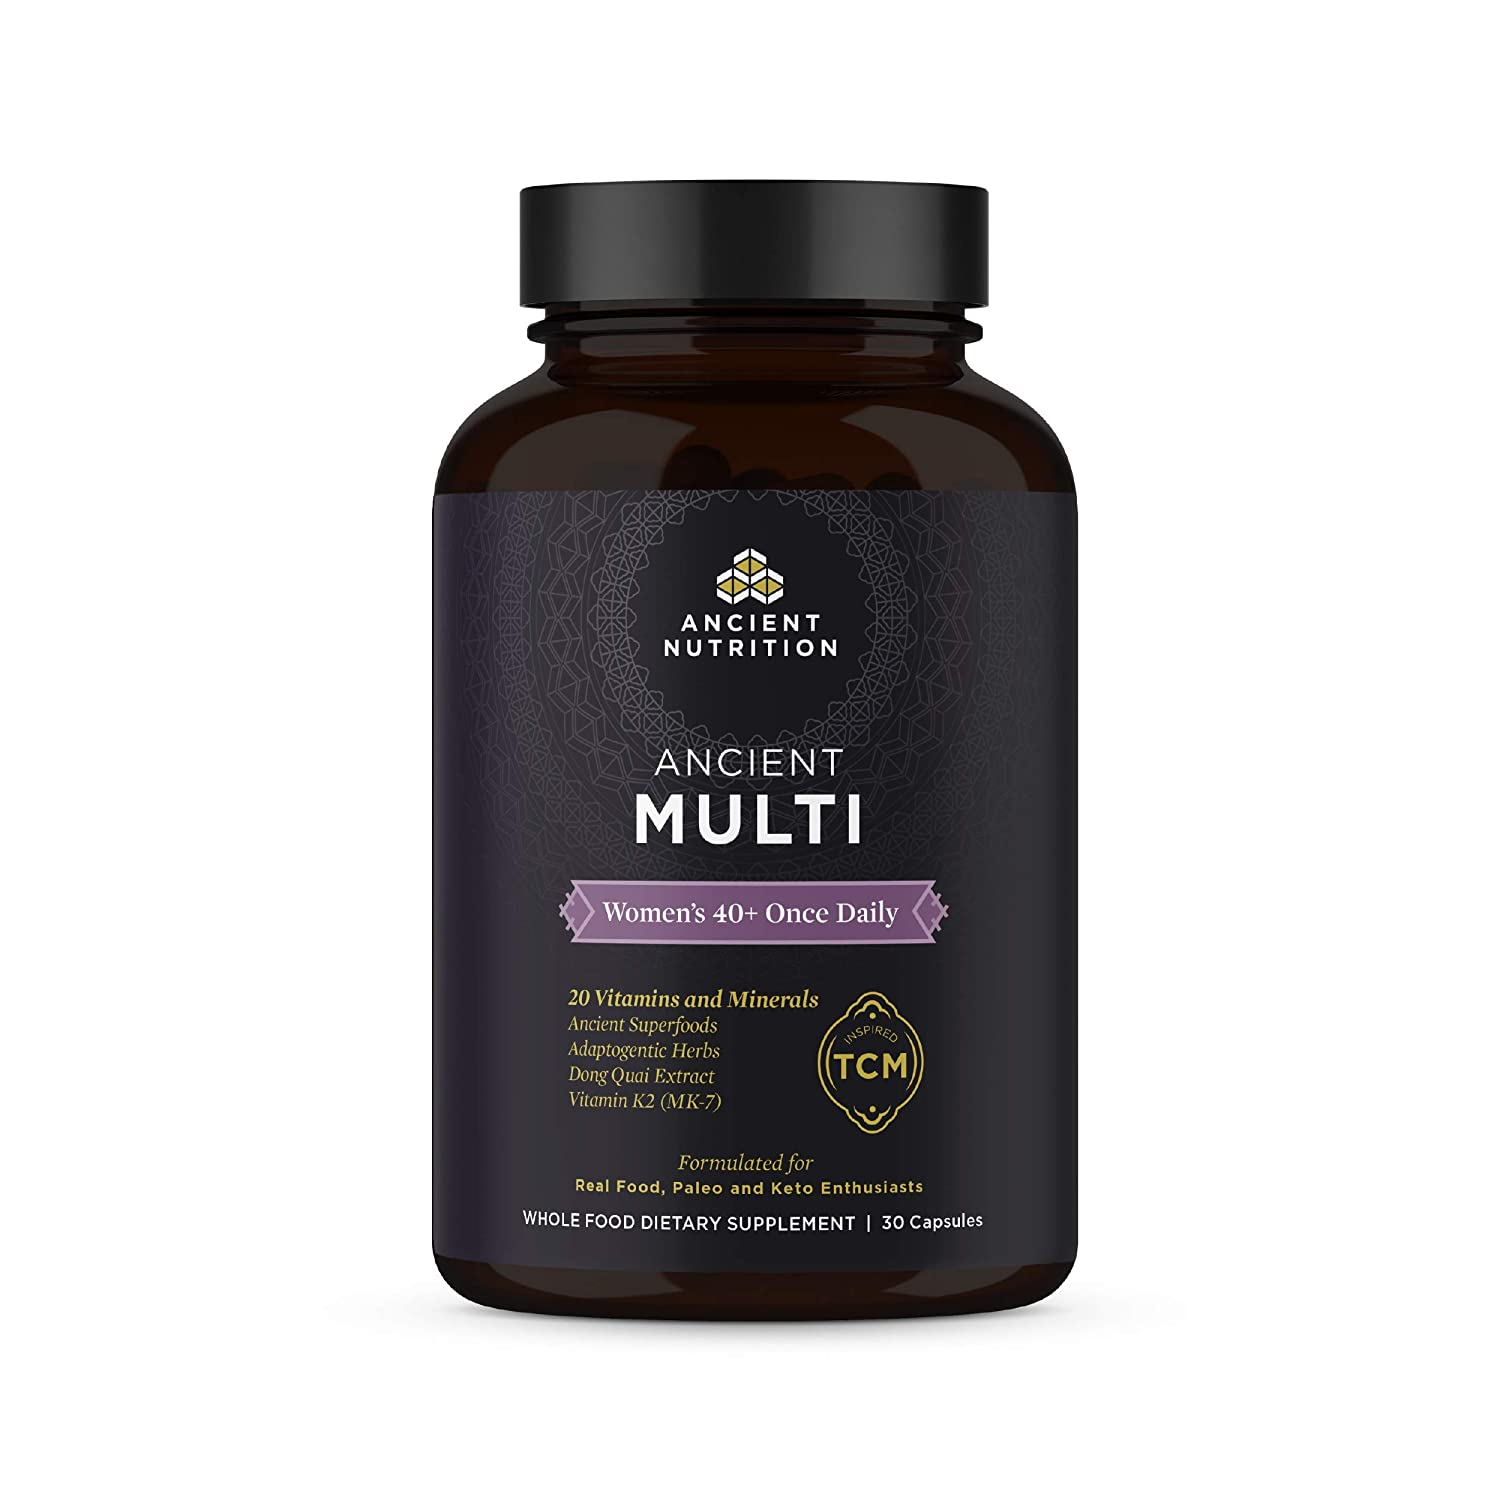 Ancient Nutrition, Ancient Multi Women s 40 Once Daily – 20 Vitamins Minerals, Adaptogenic Herbs, Paleo Keto Friendly, 30 Capsules